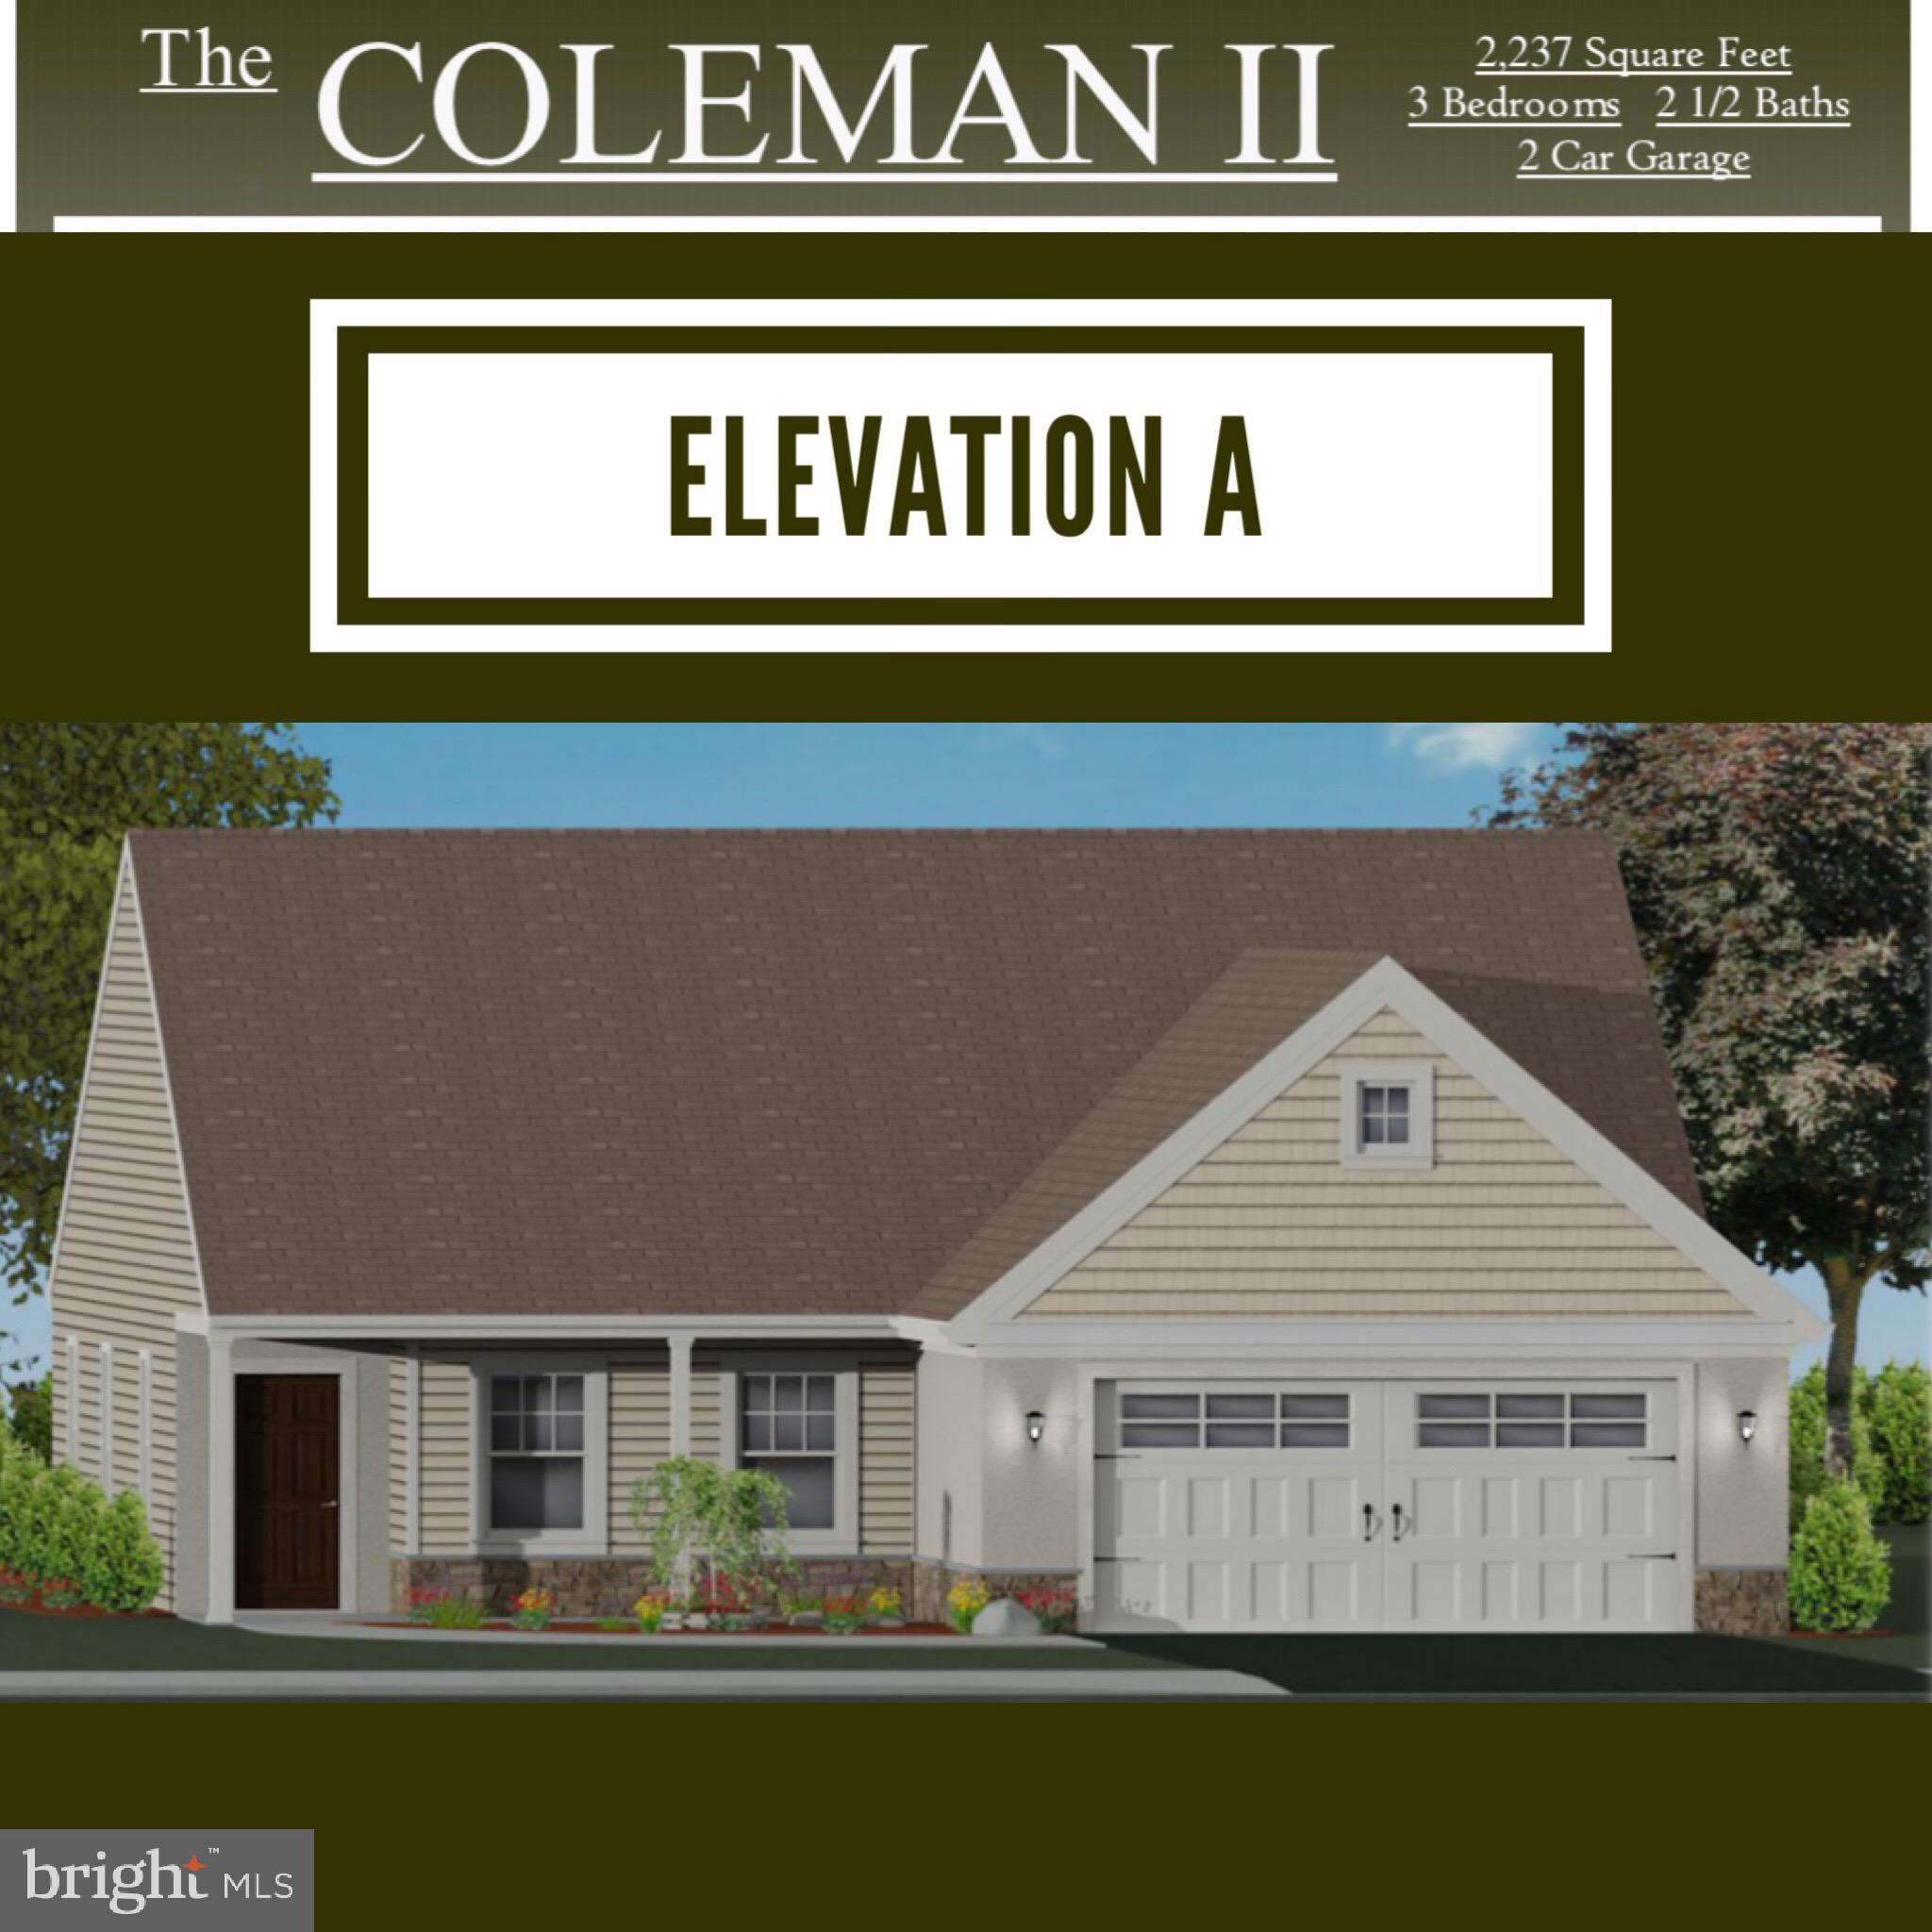 0 THE COLEMAN 2 - ALDEN HOMES AT MOUNTAIN MEADOWS, MYERSTOWN, PA 17067